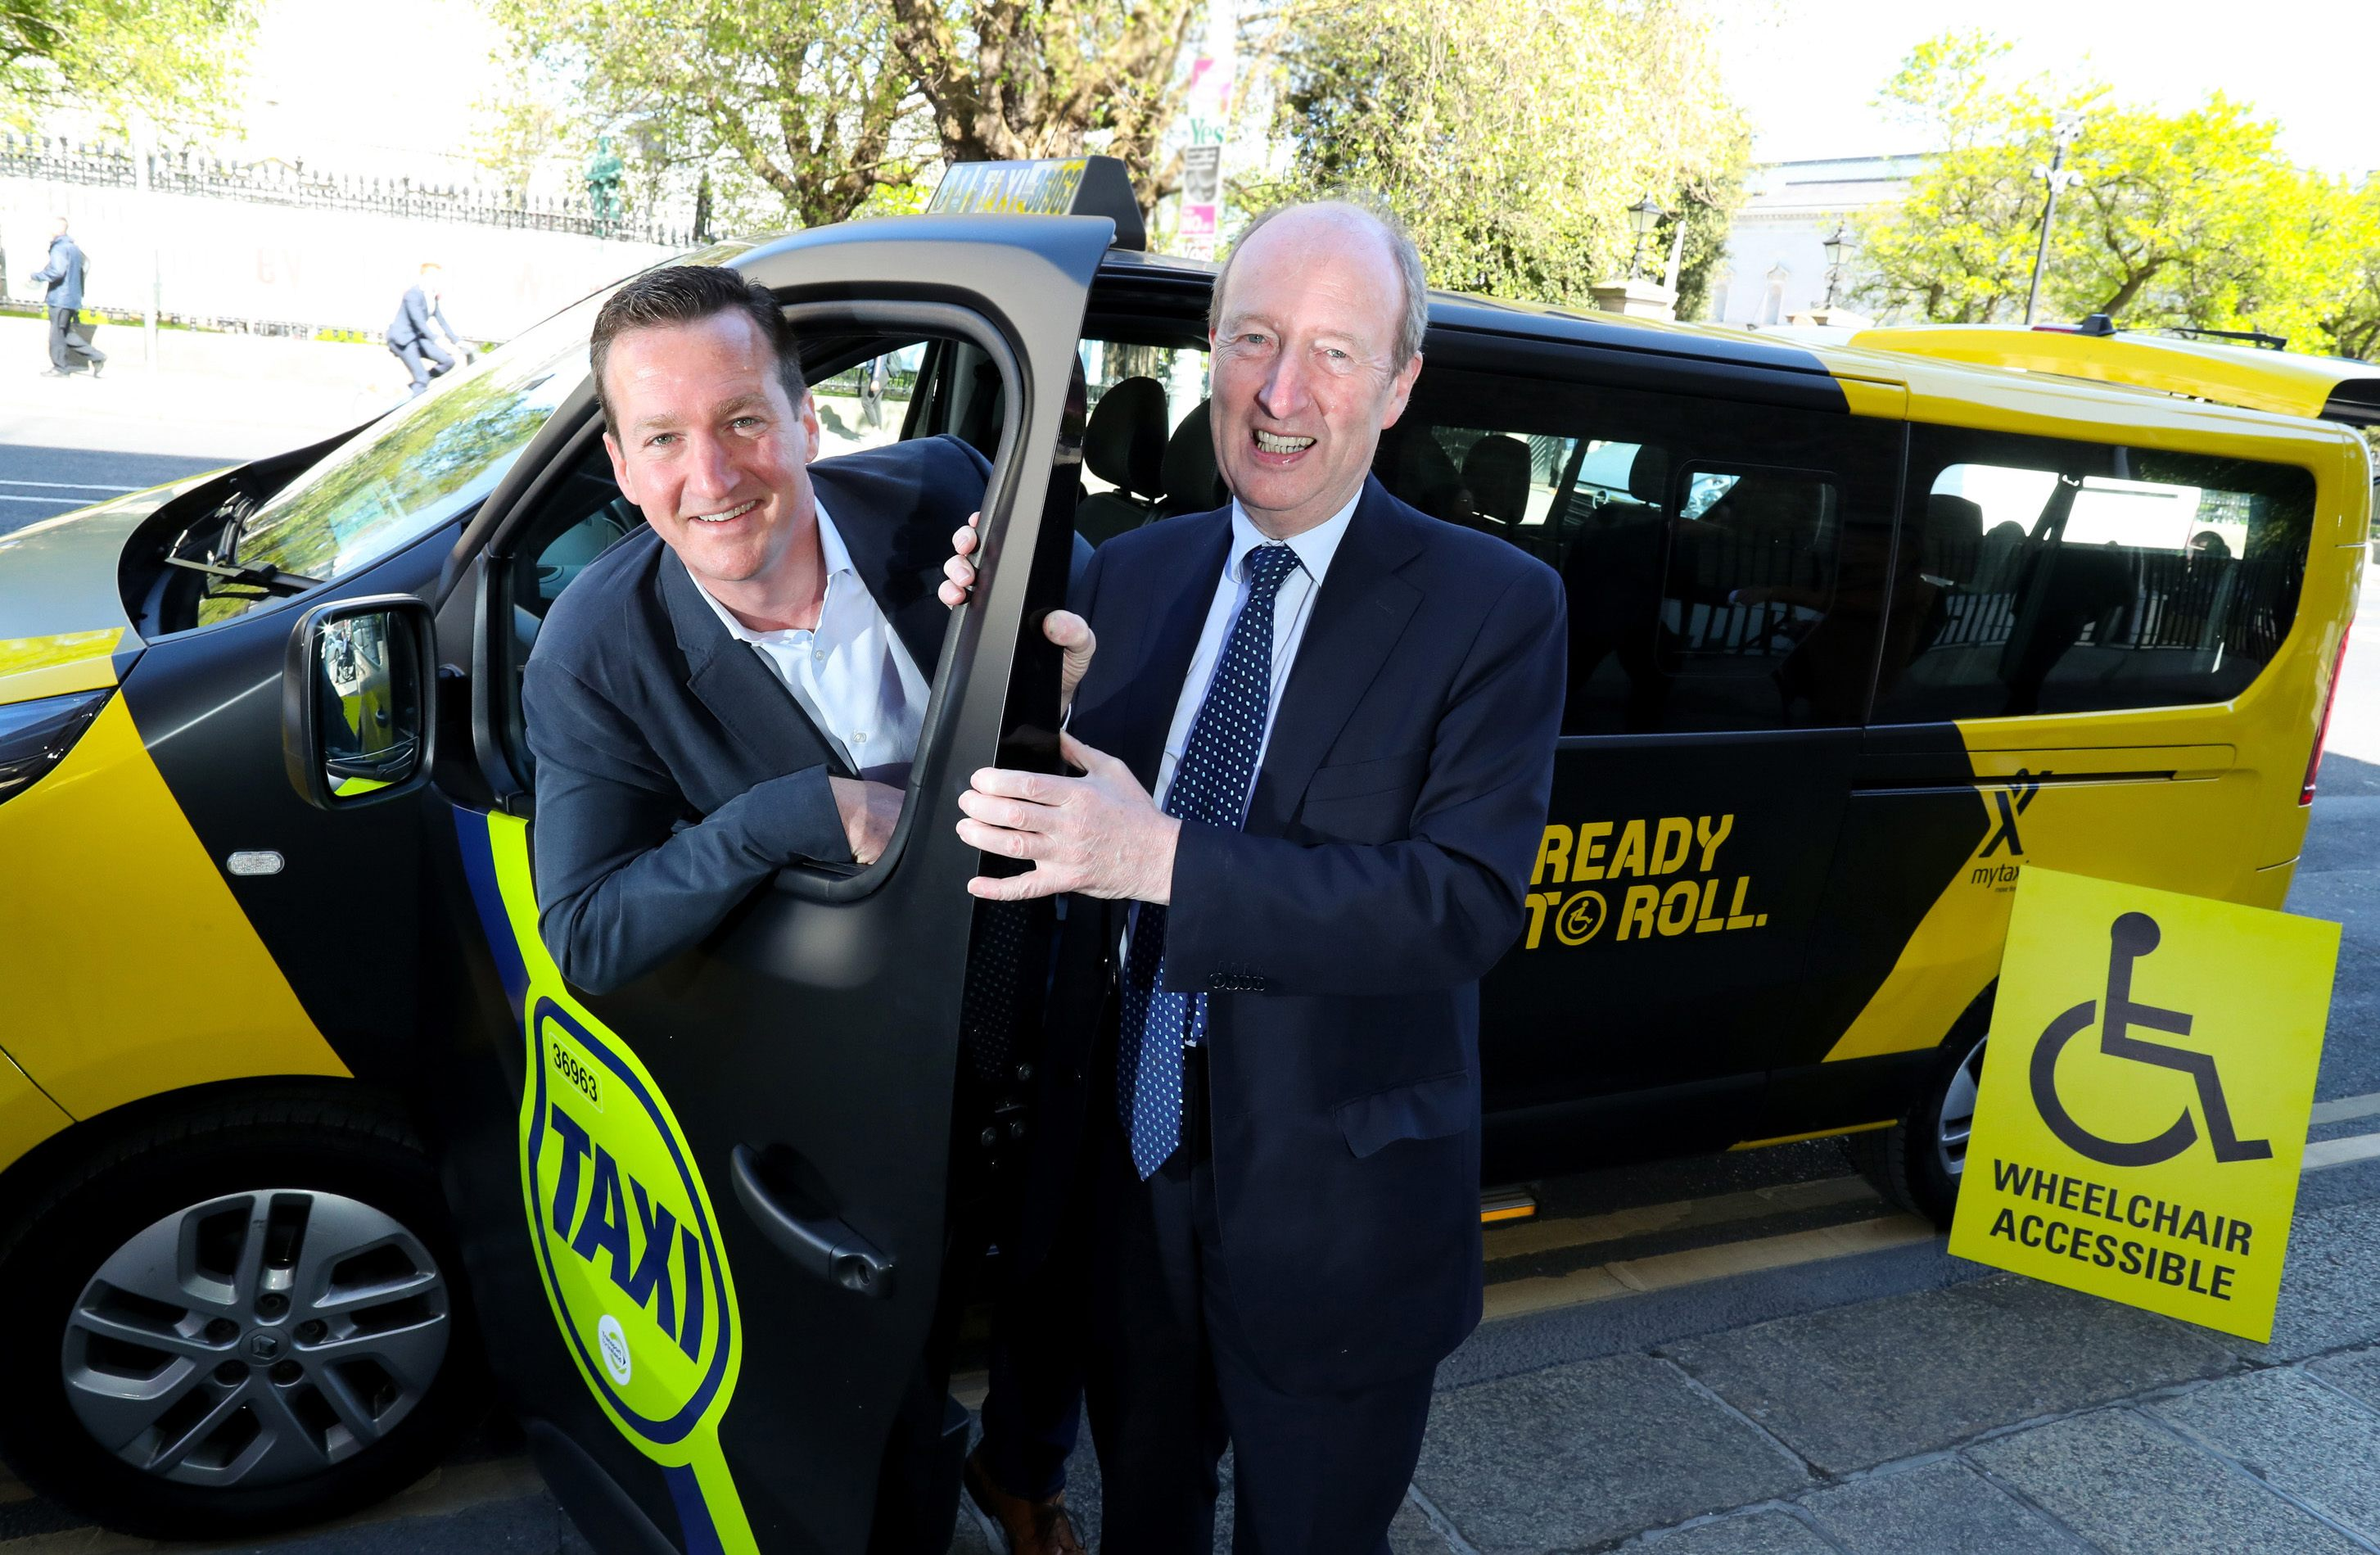 Mytaxi announces €15,000 in electric vehicle and accessibility